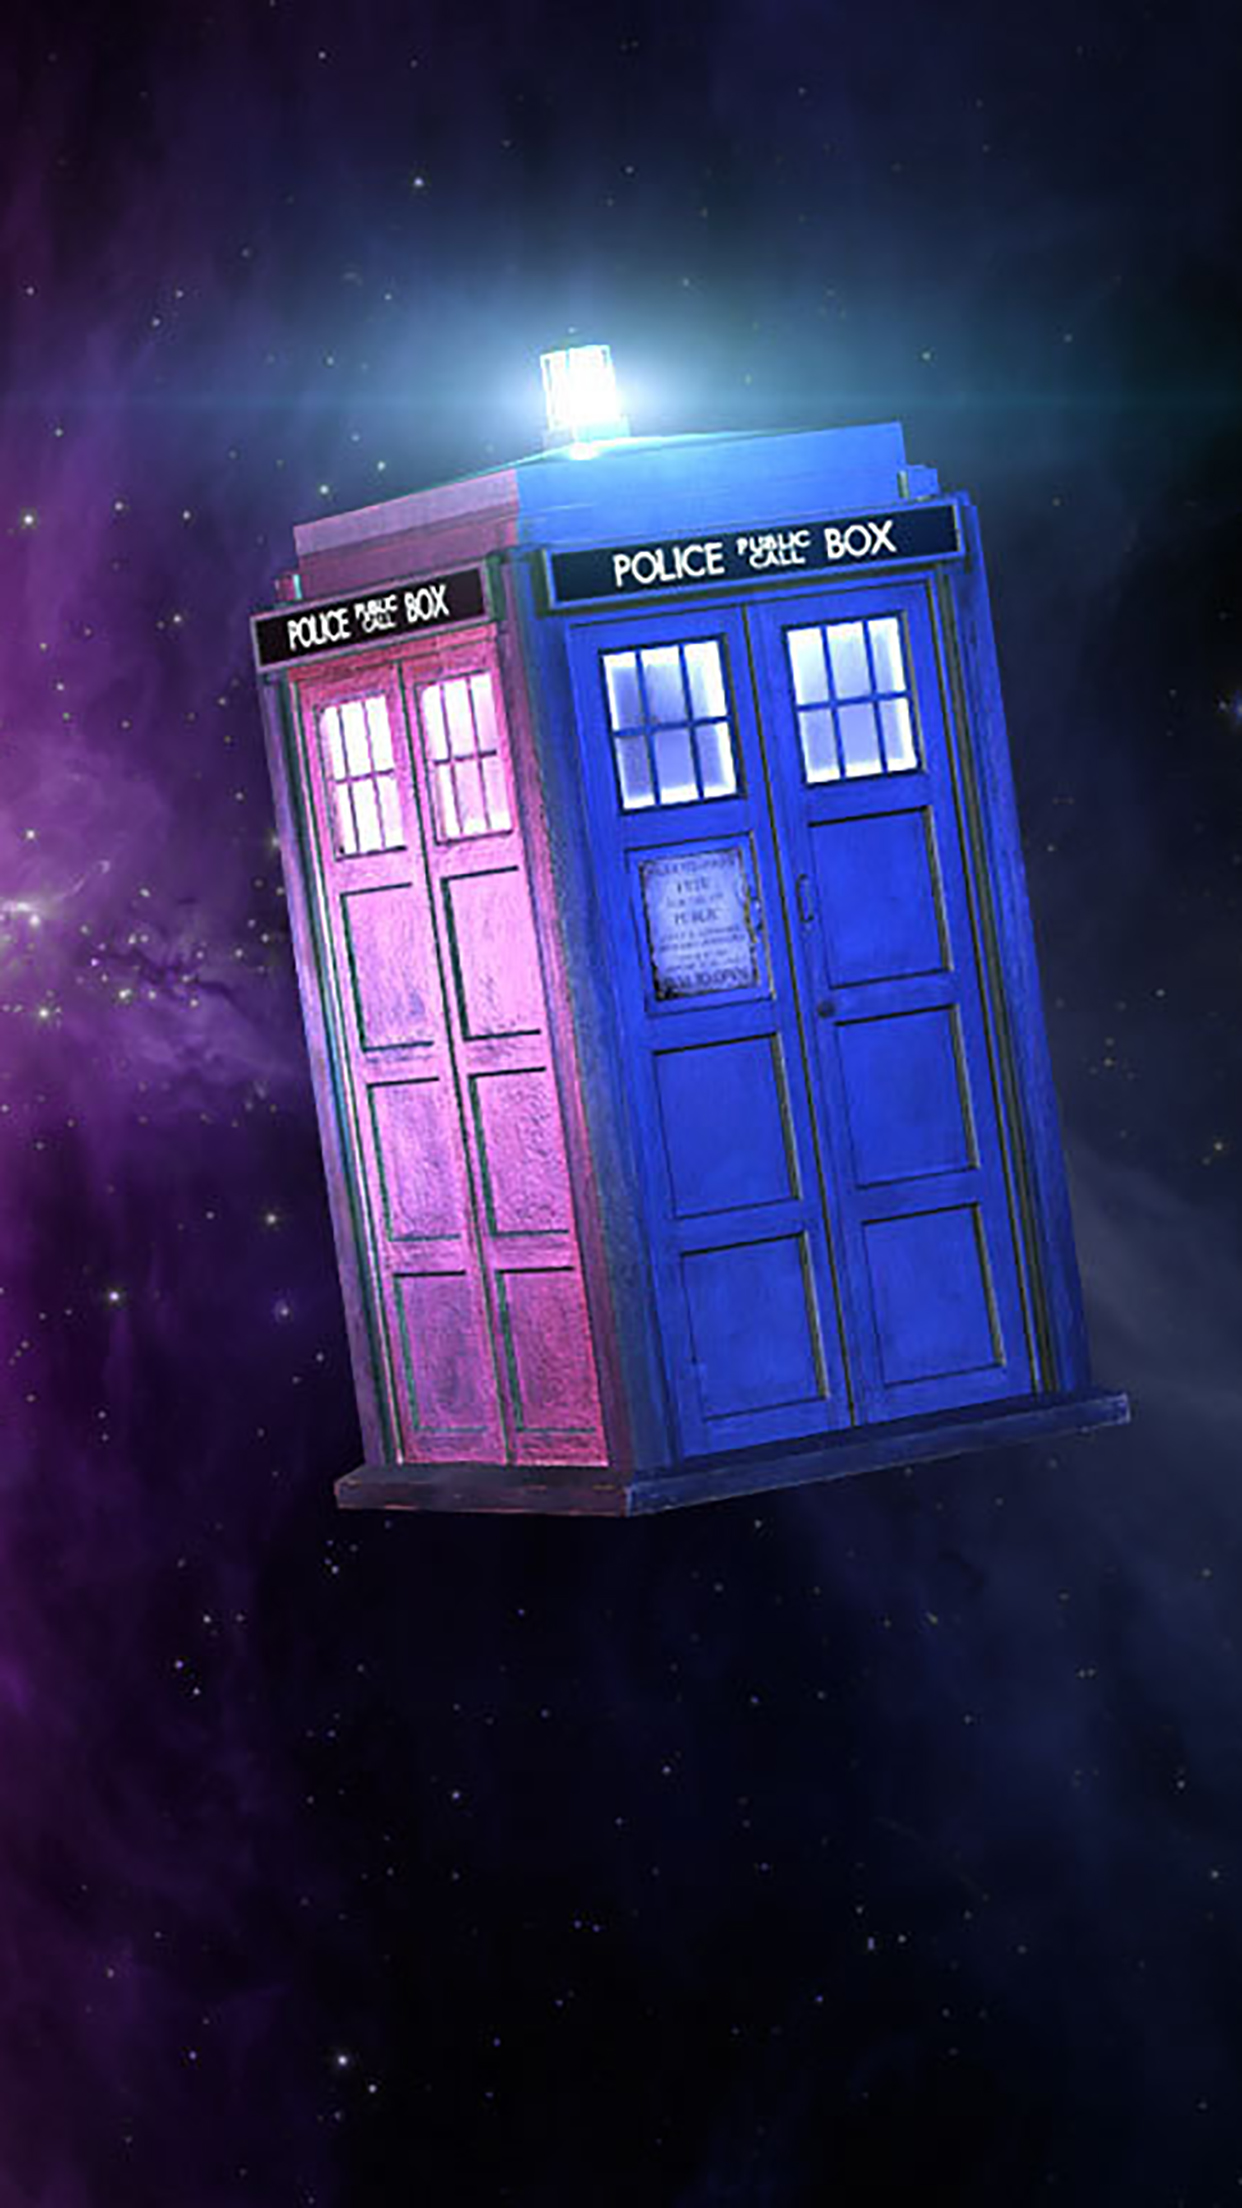 Doctor Who Public Call Box Wallpaper For Iphone 11 Pro Max X